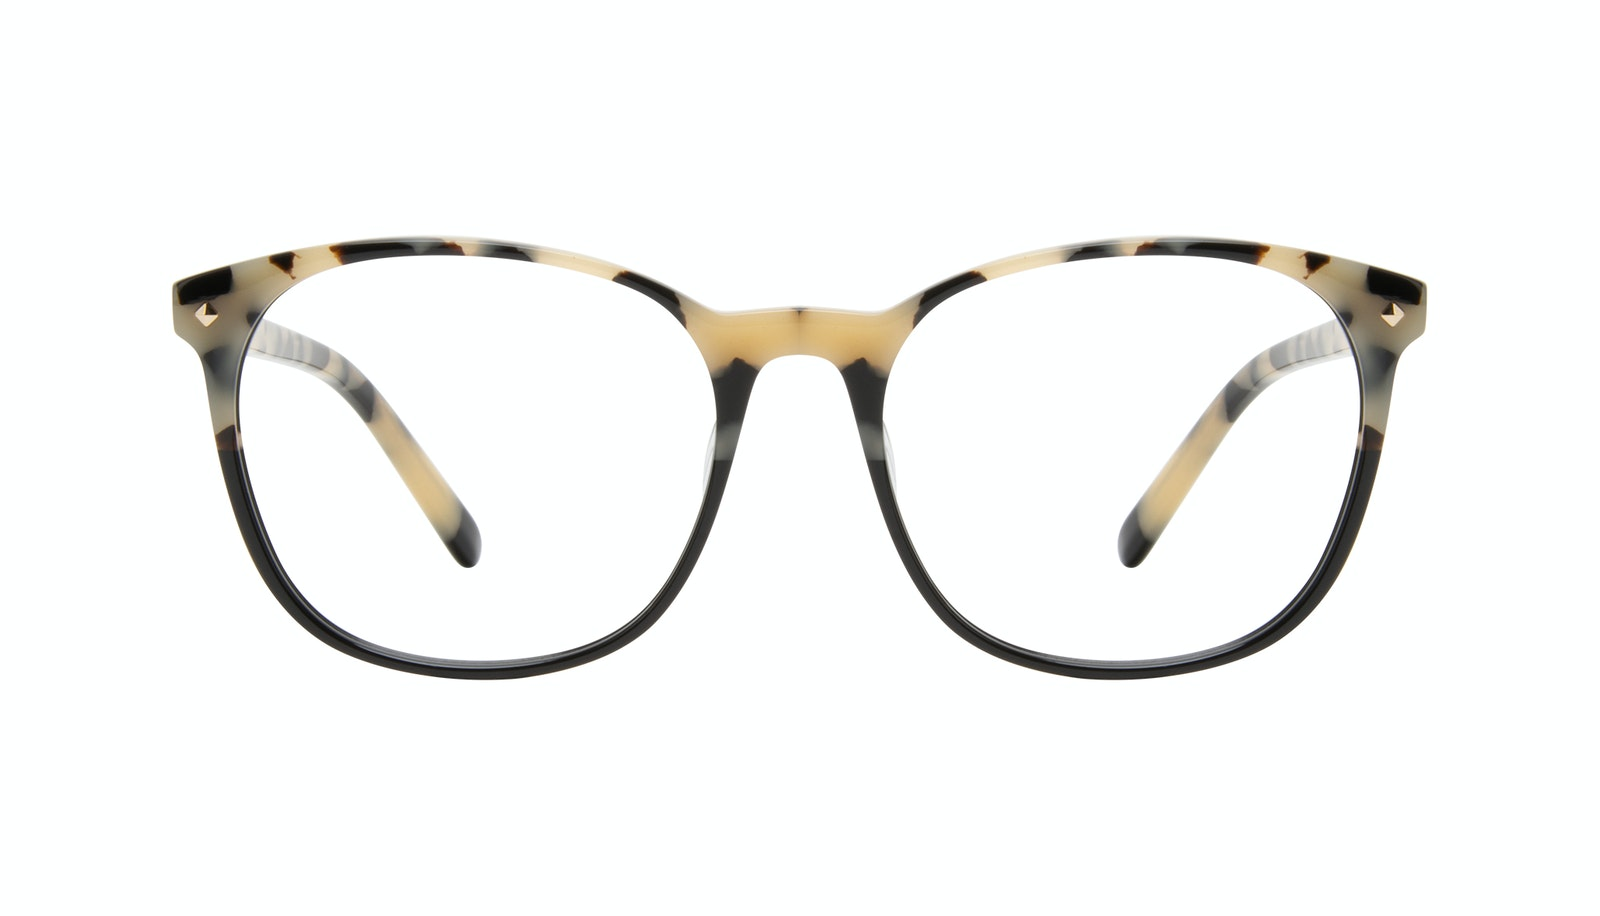 Affordable Fashion Glasses Round Eyeglasses Women Revive Ebony Granite